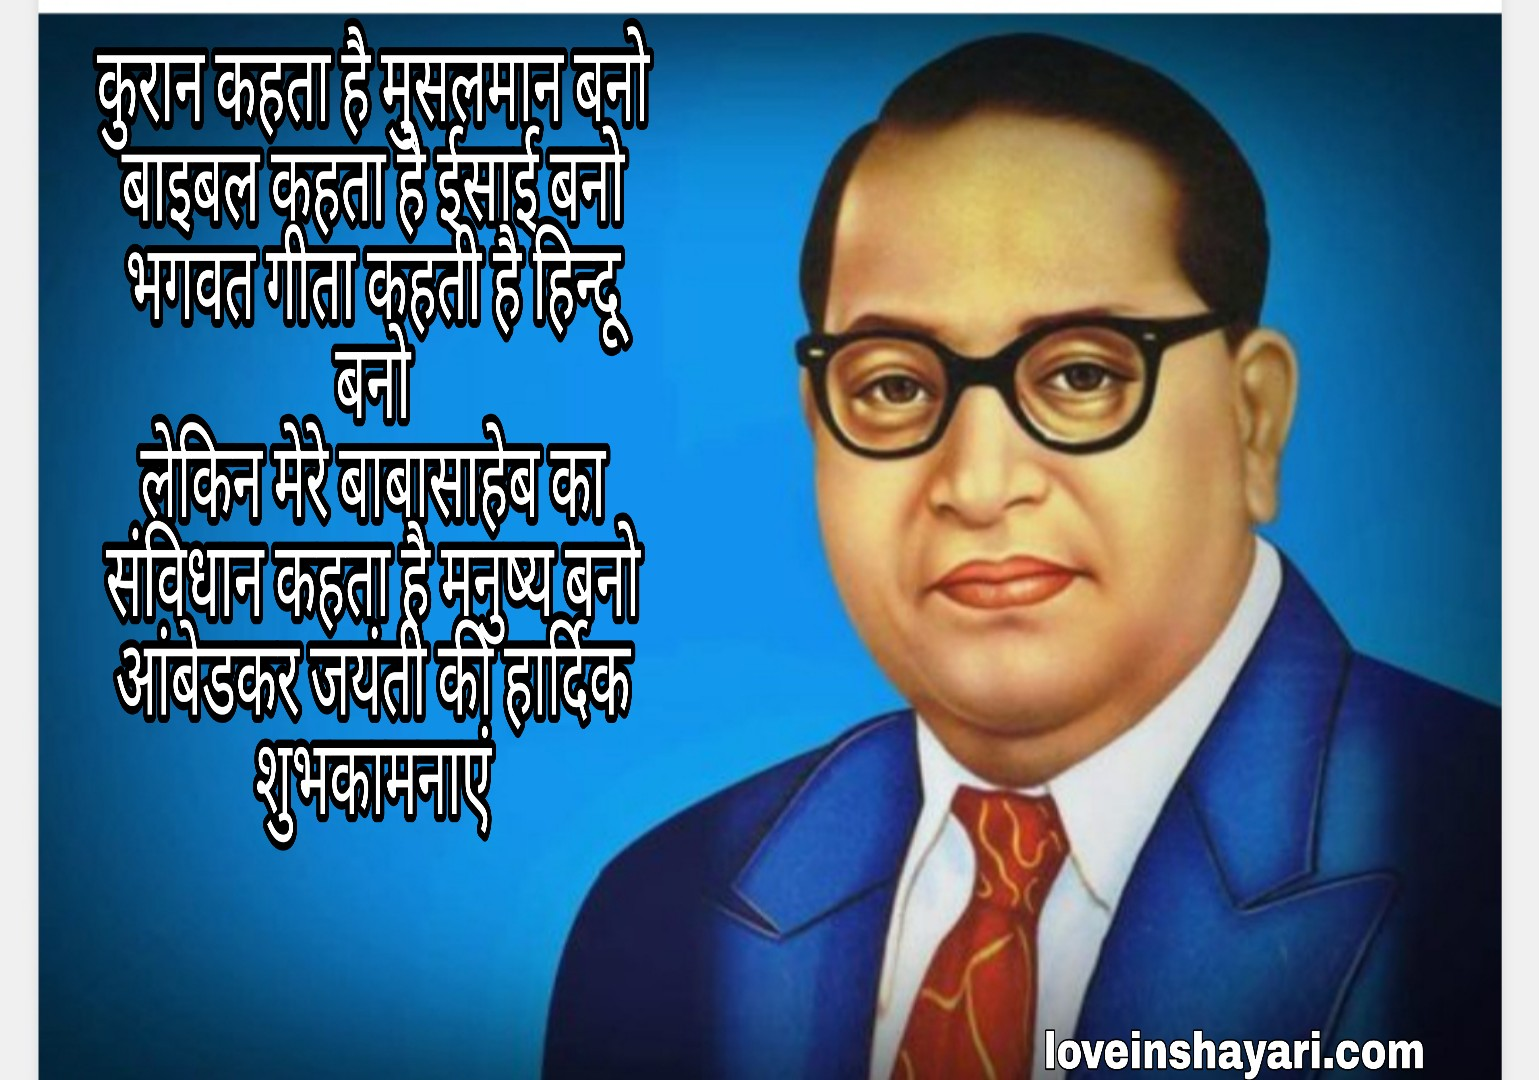 Photo of Ambedkar jayanti wishes shayari quotes messages